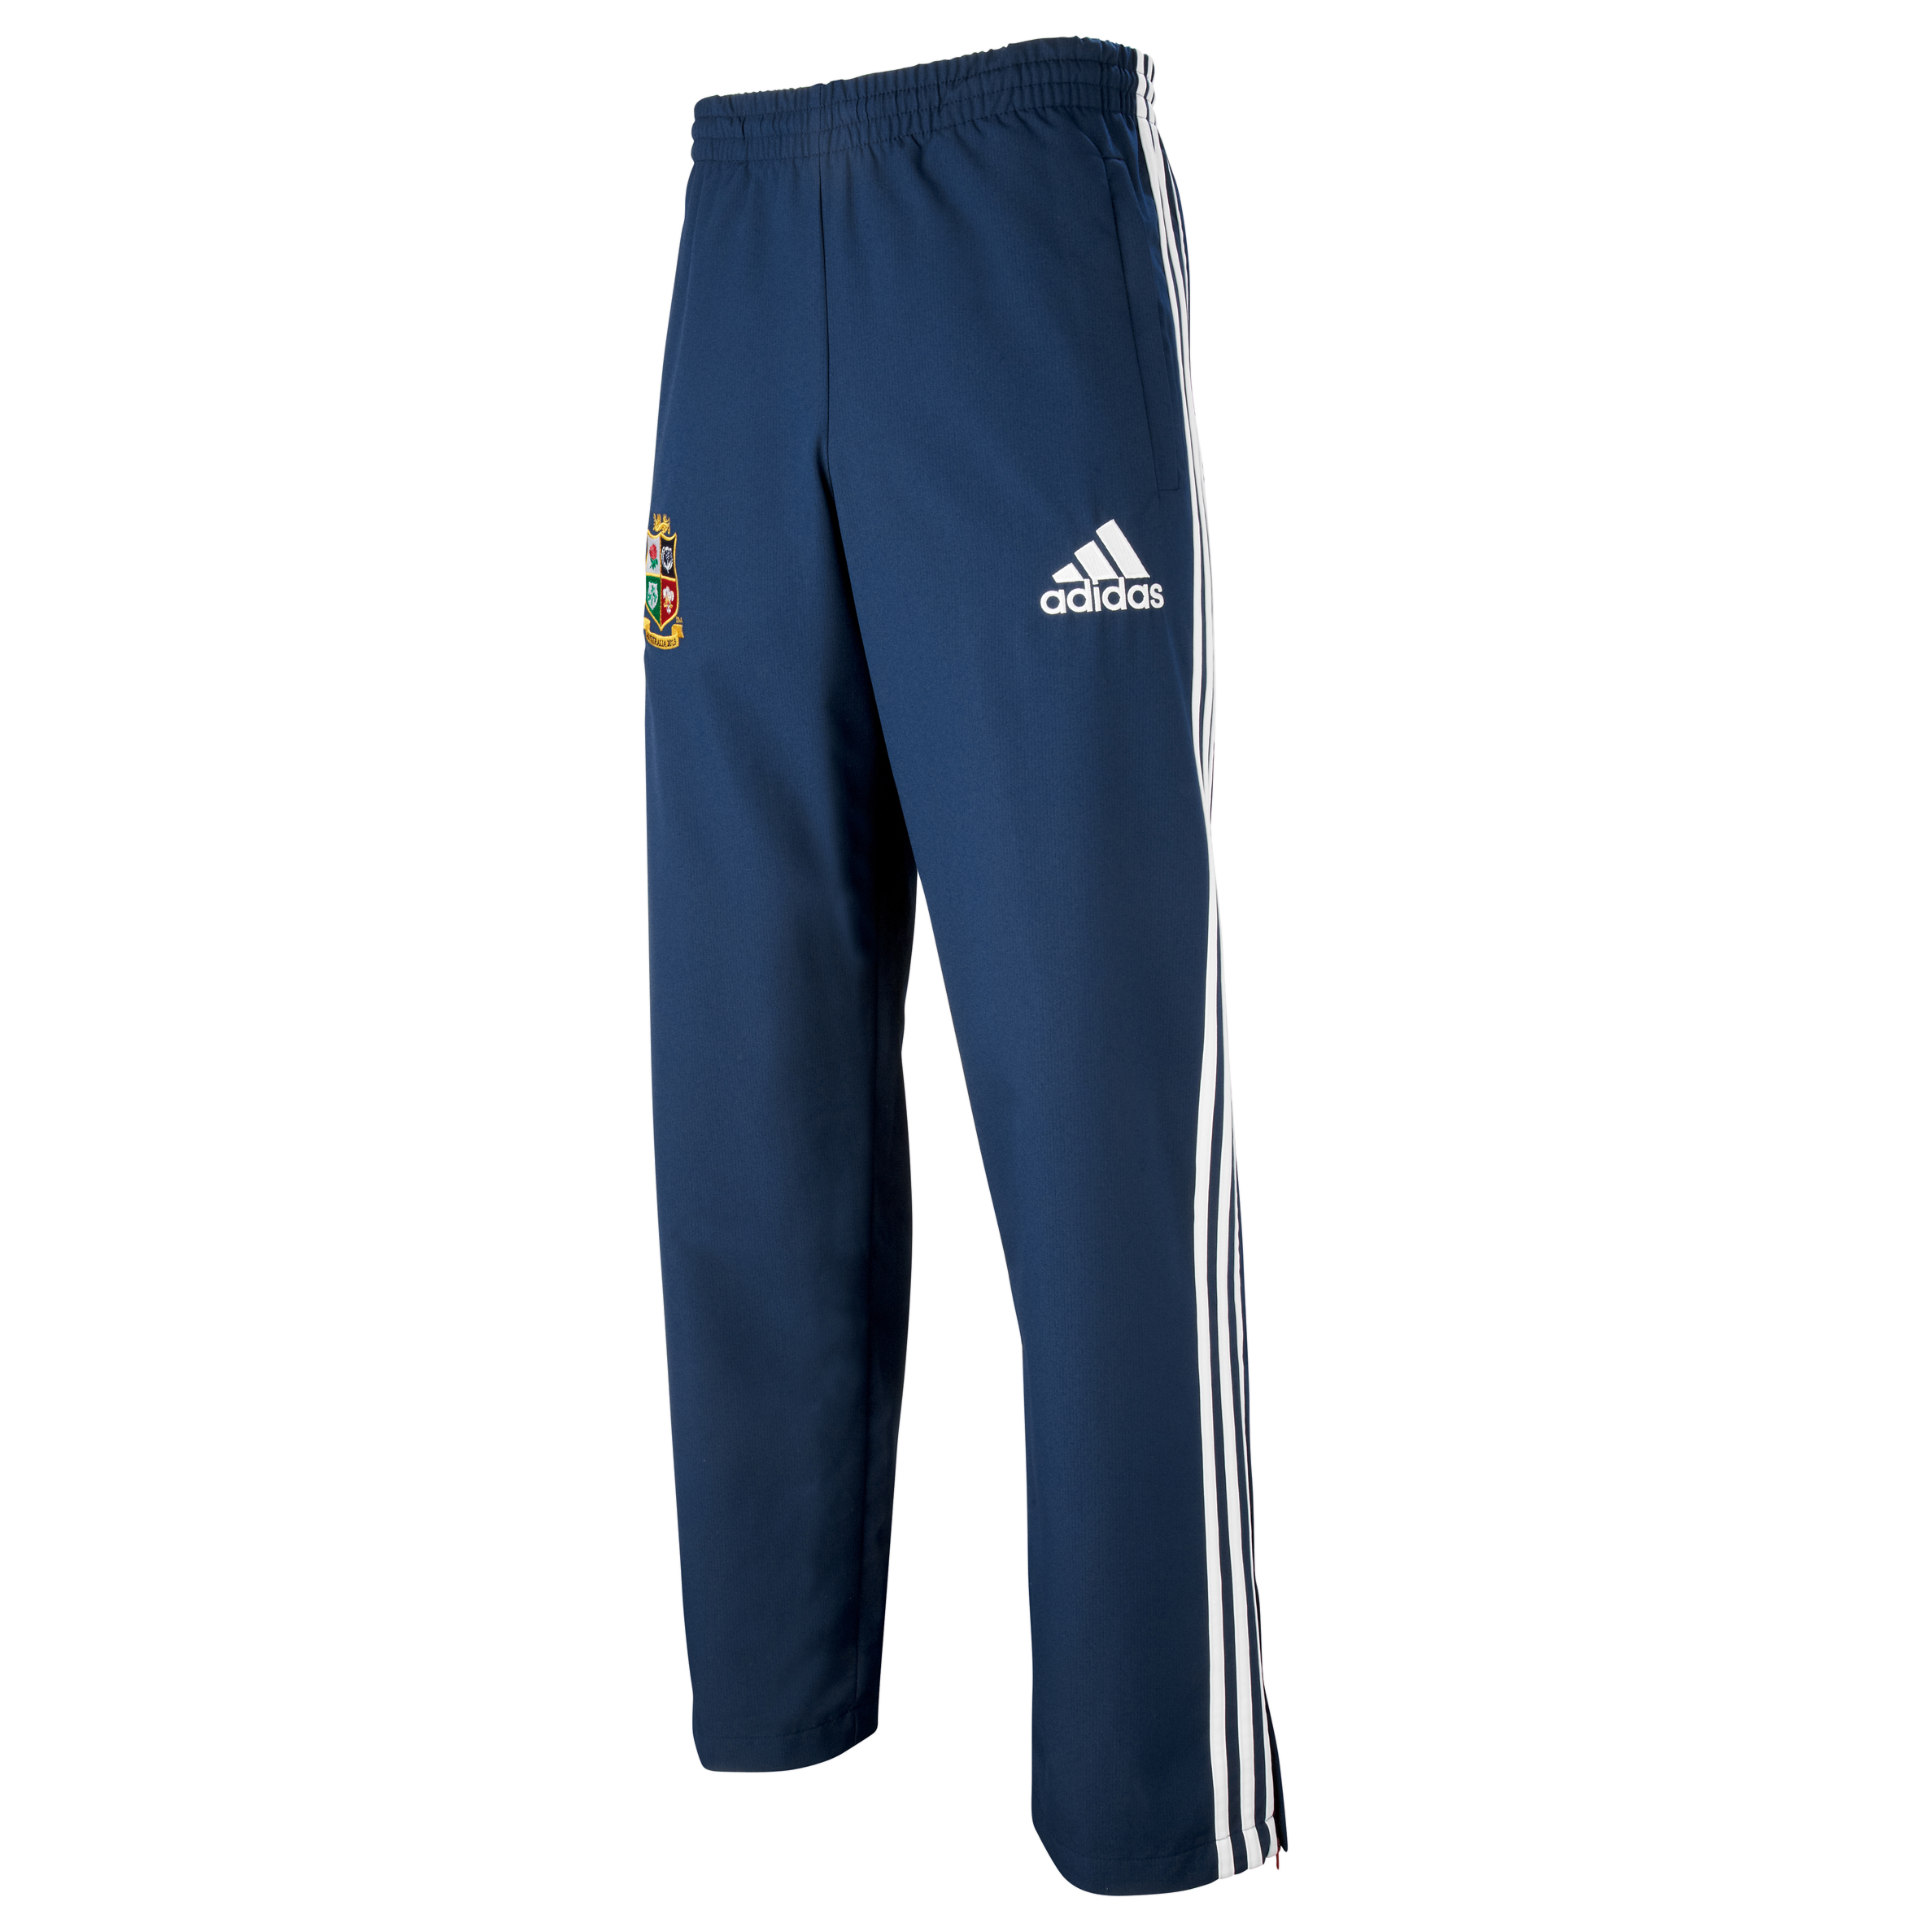 adidas British and Irish Lions Presentation Pants - Collegiate Navy/White